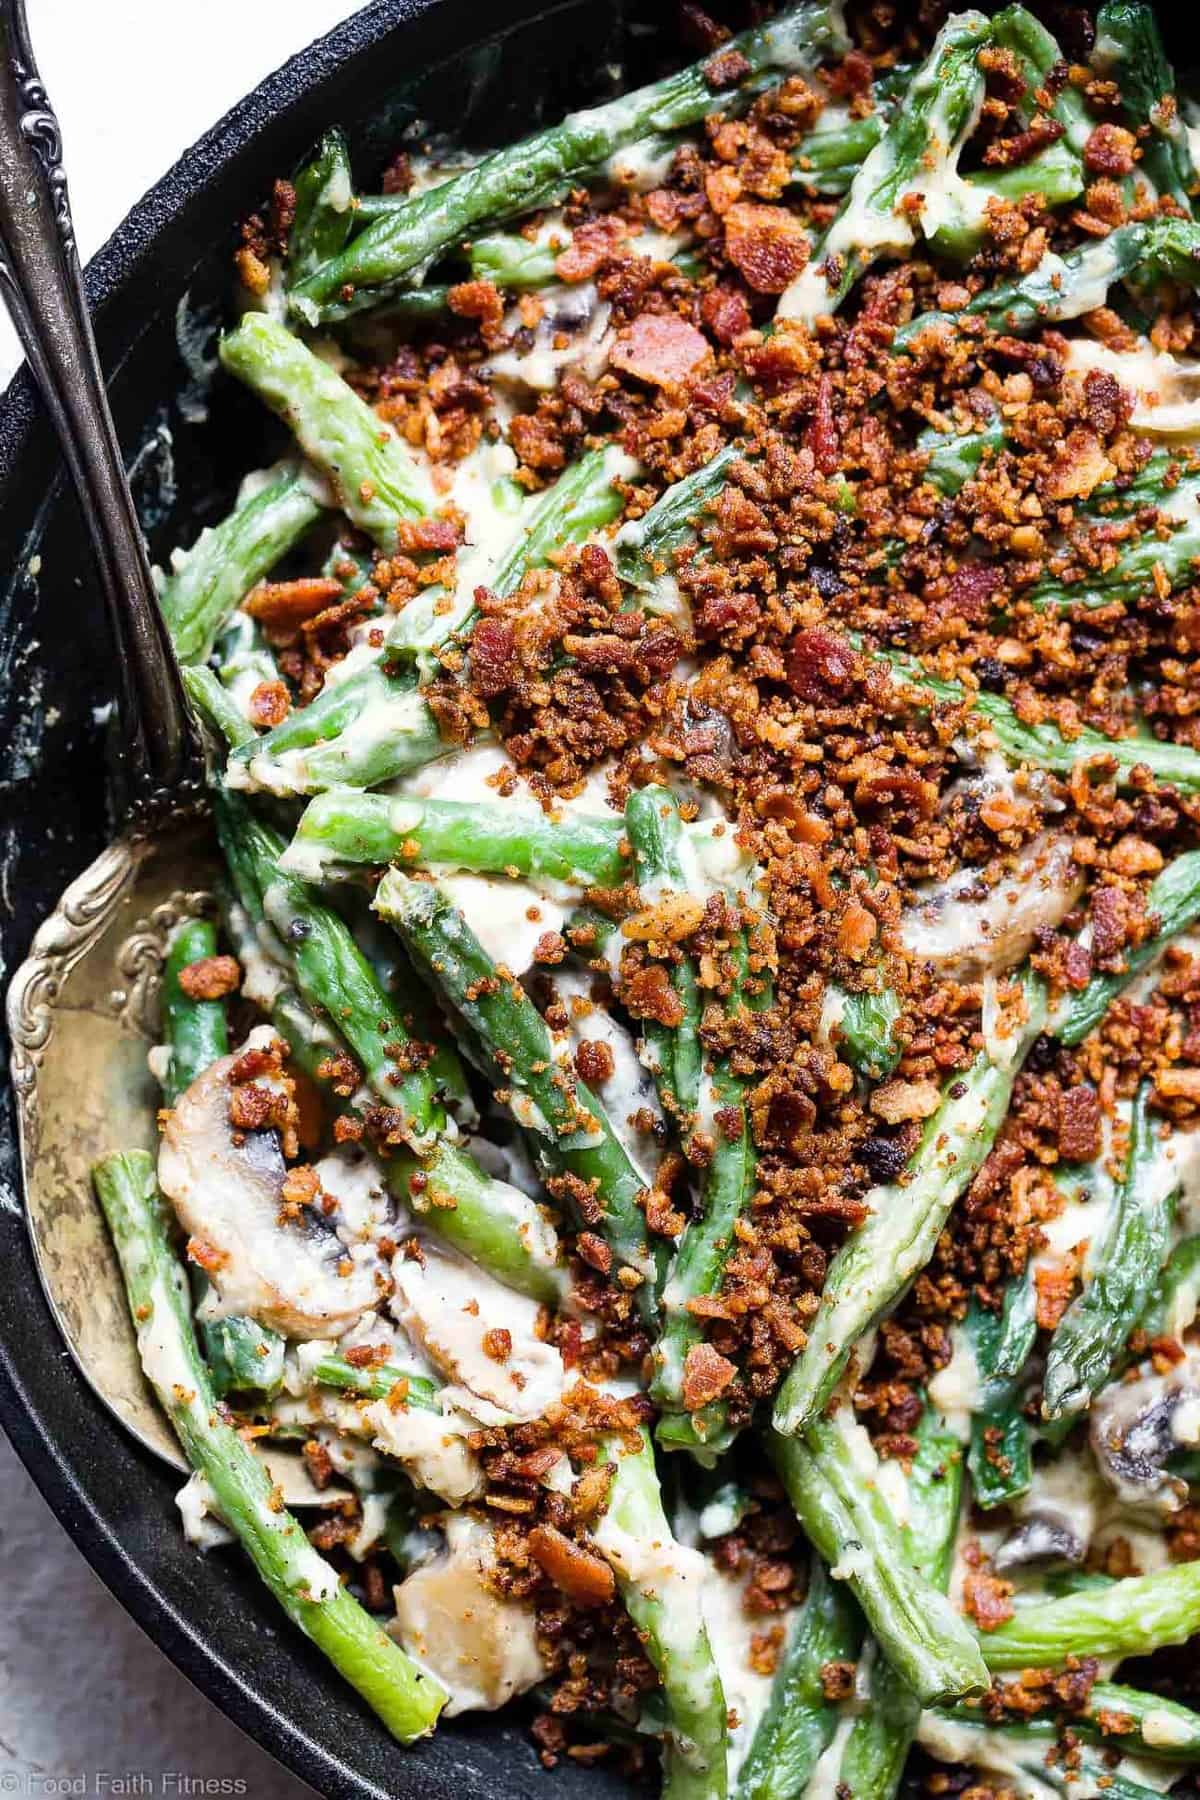 Low Carb Keto Green Bean Casserole - This Low Carb Green Bean Casserole is an EASY, healthy remake of the classic side! No one will know it's better for you! Dairy free option included! | #Foodfaithfitness | #Glutenfree #Dairyfree #Keto #Lowcarb #Healthy